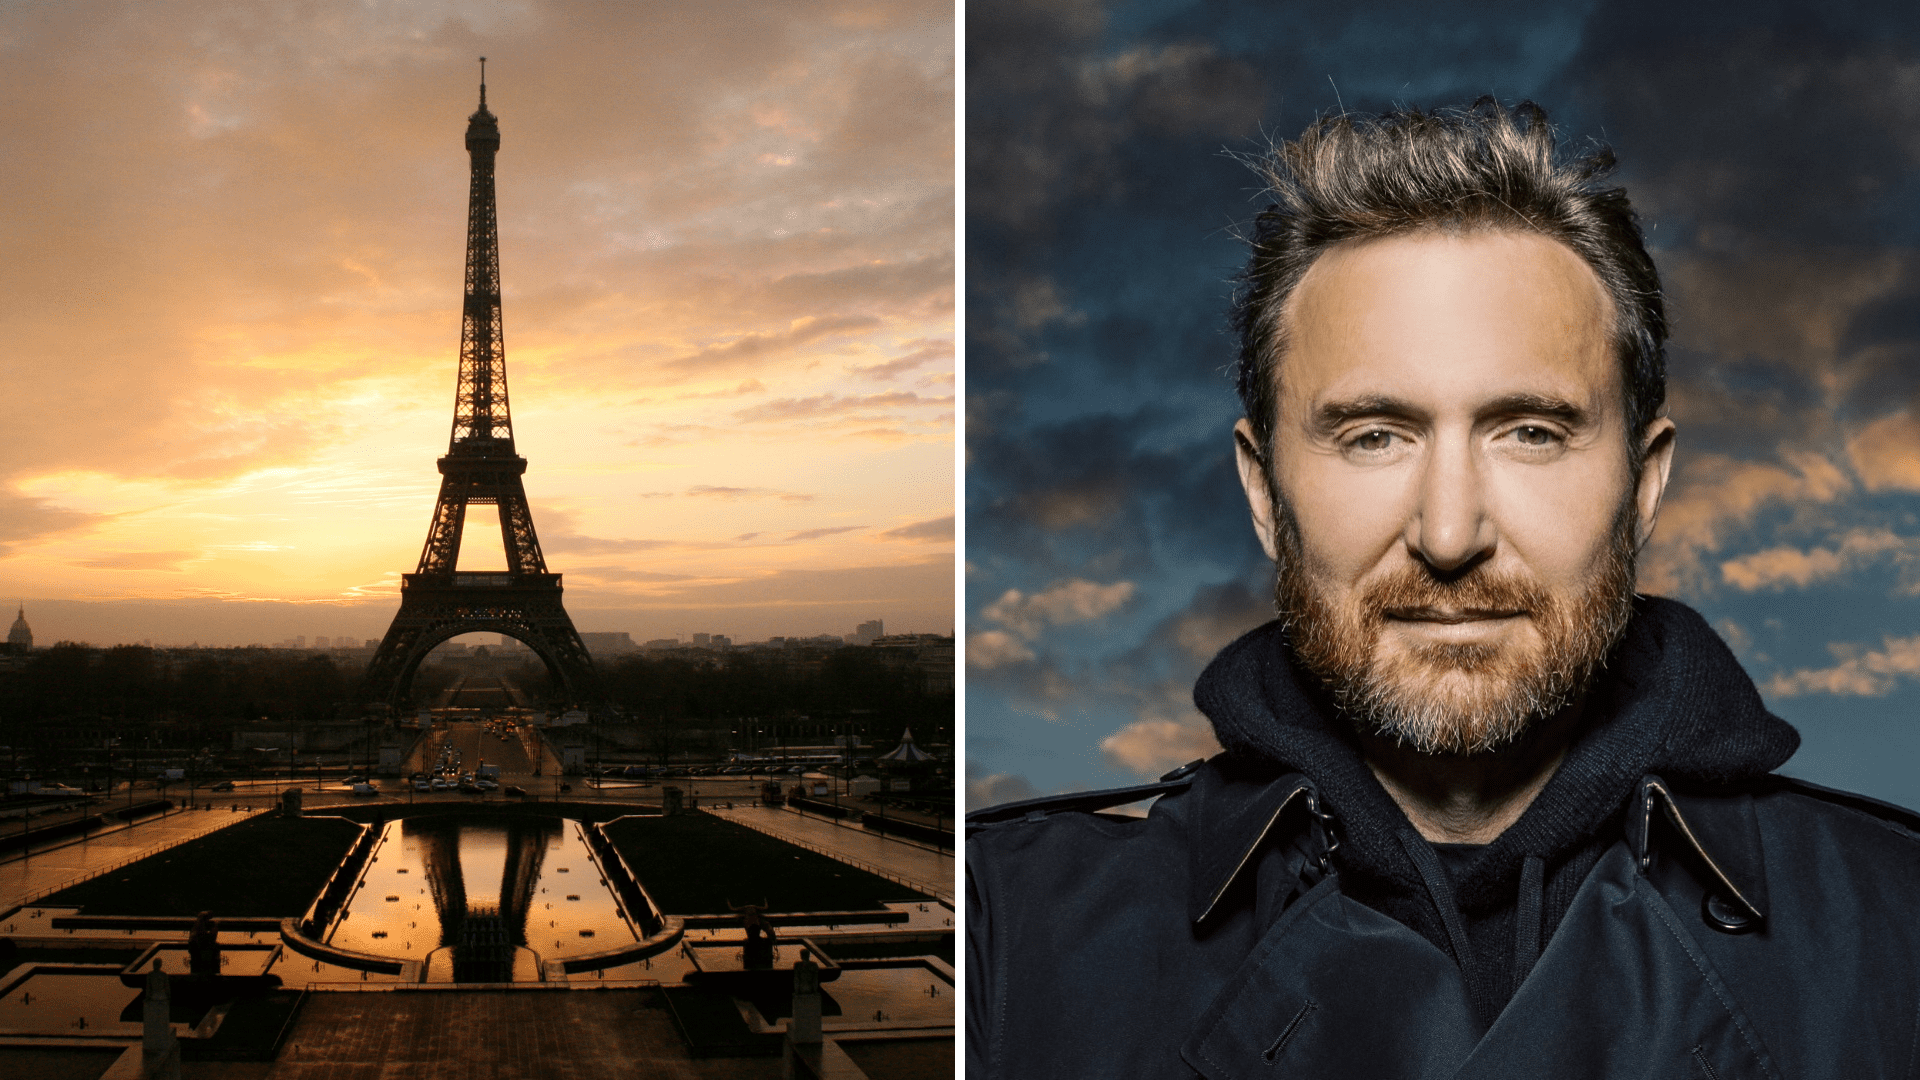 David Guetta & Eiffel Tower